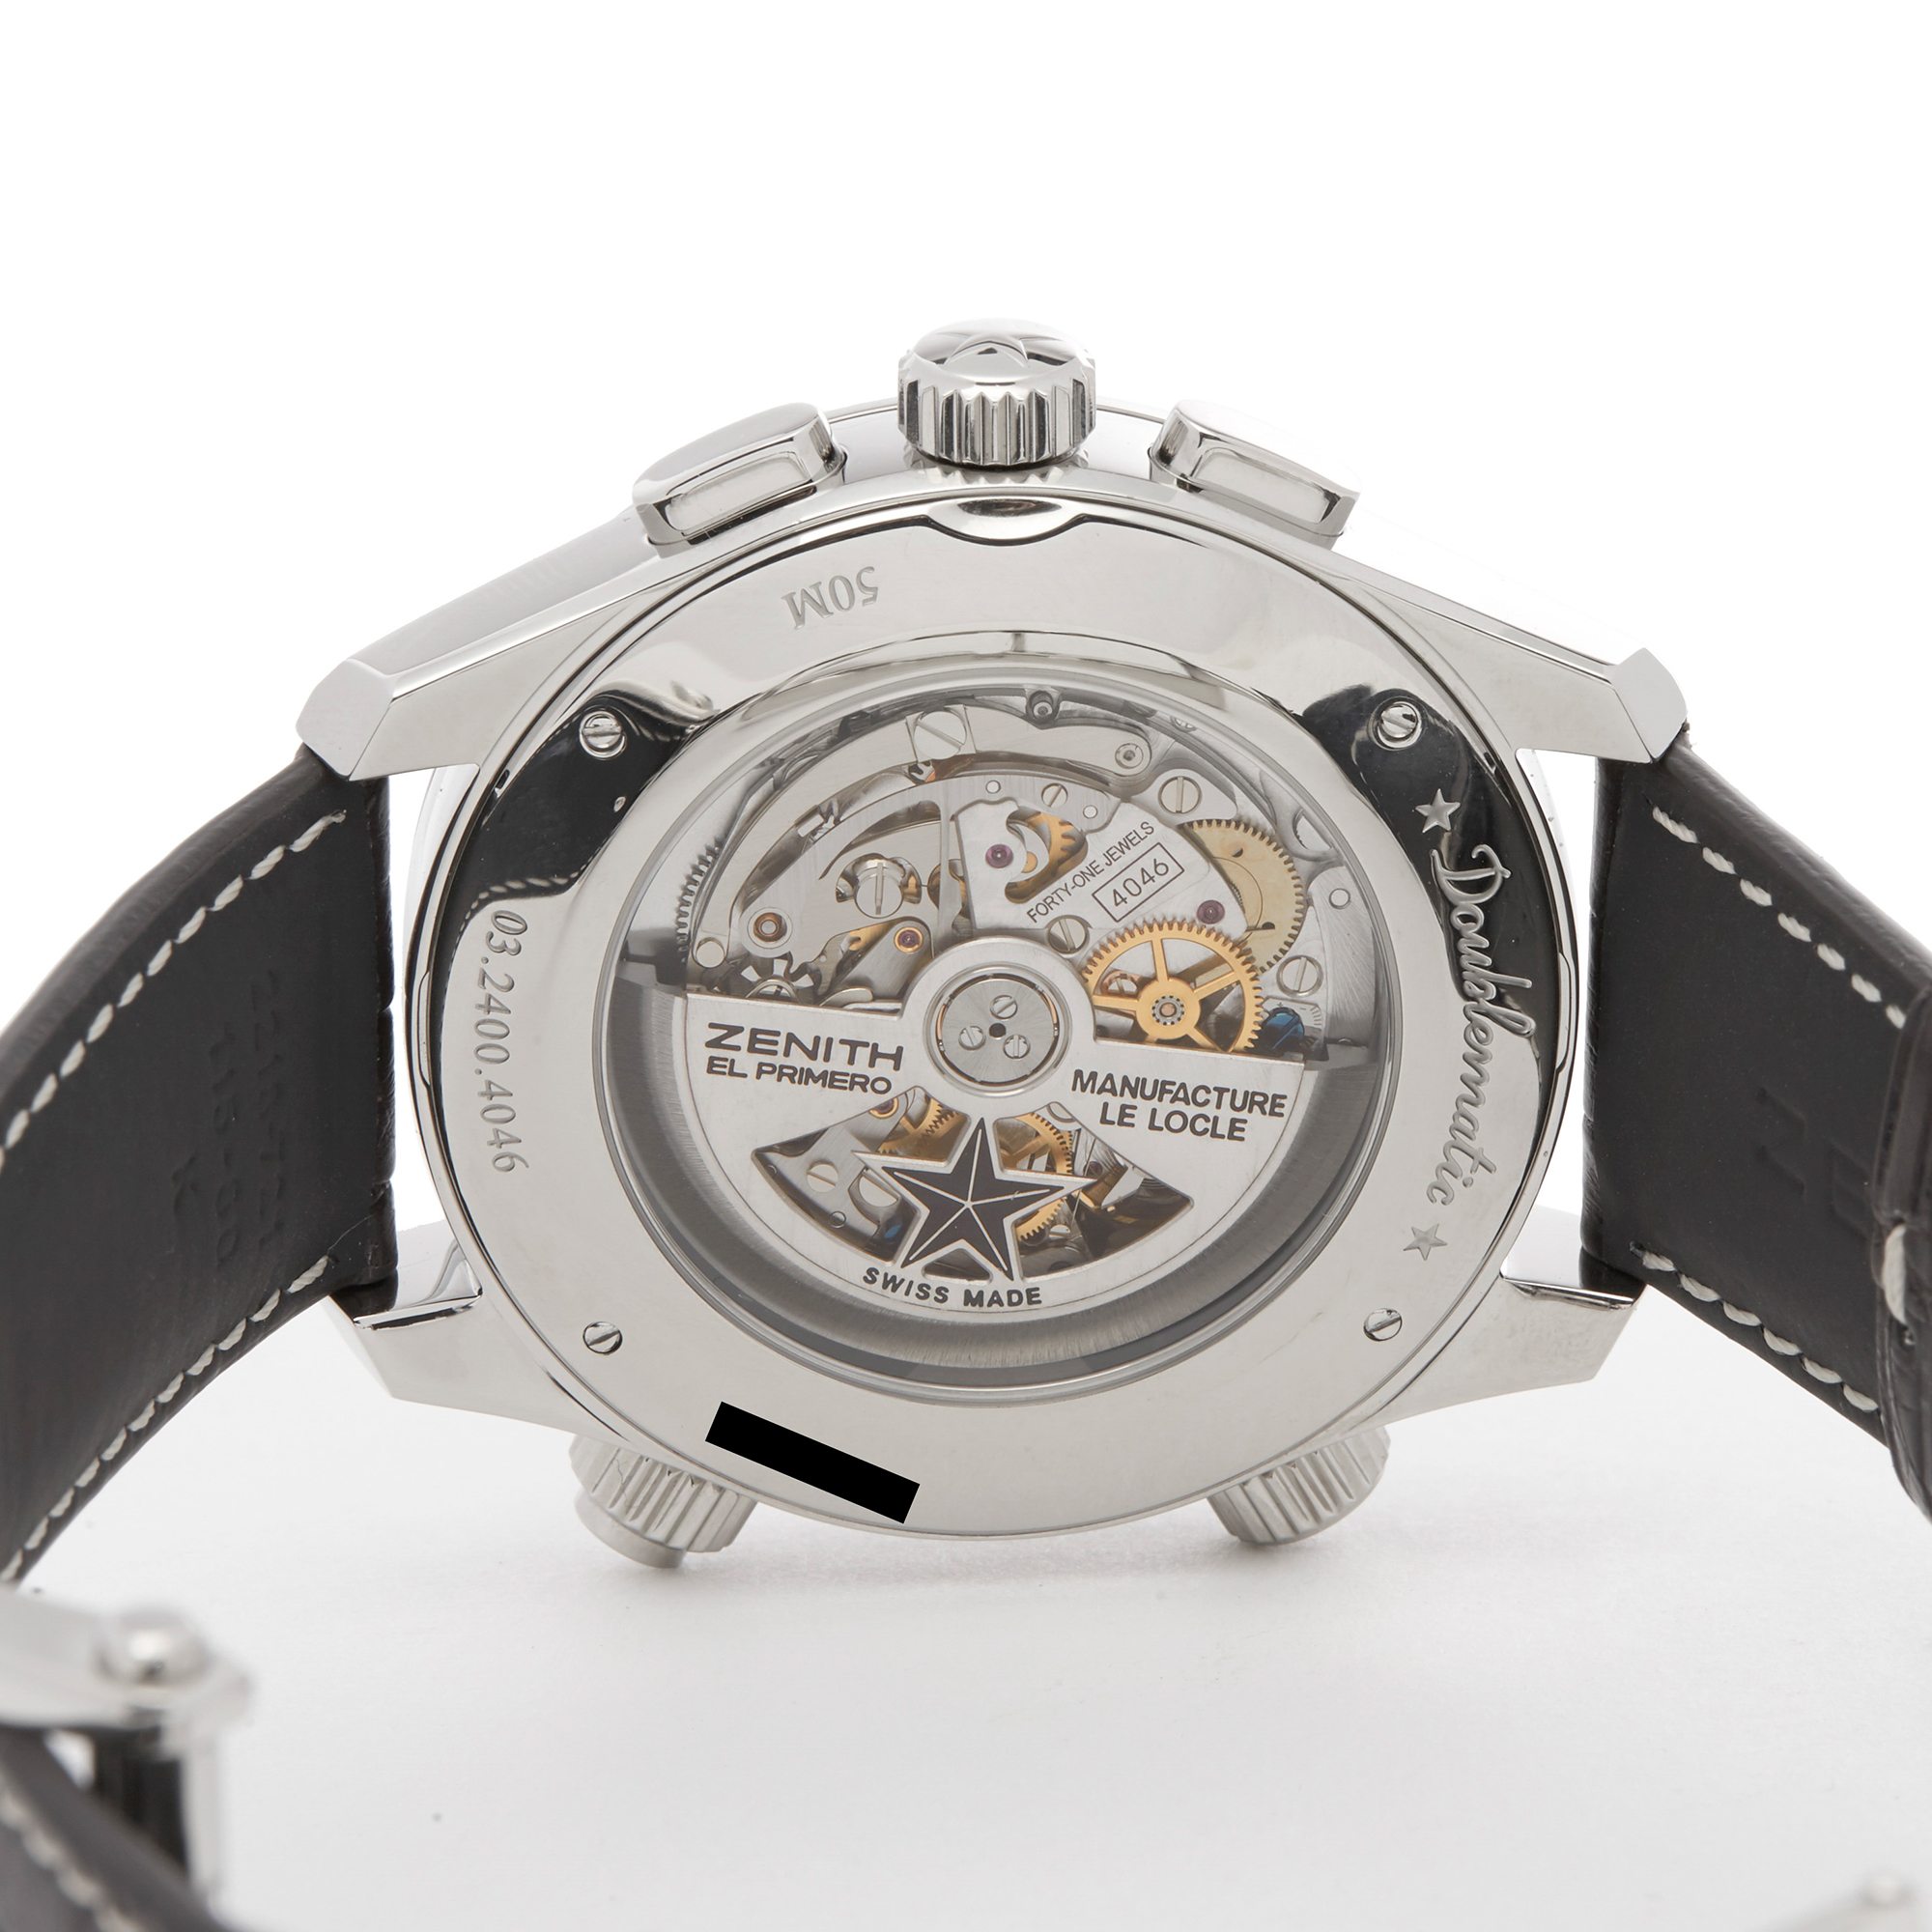 Zenith Doublematic 0 03.2400.4046/21.C721 Men Stainless Steel Chronograph Watch - Image 3 of 7